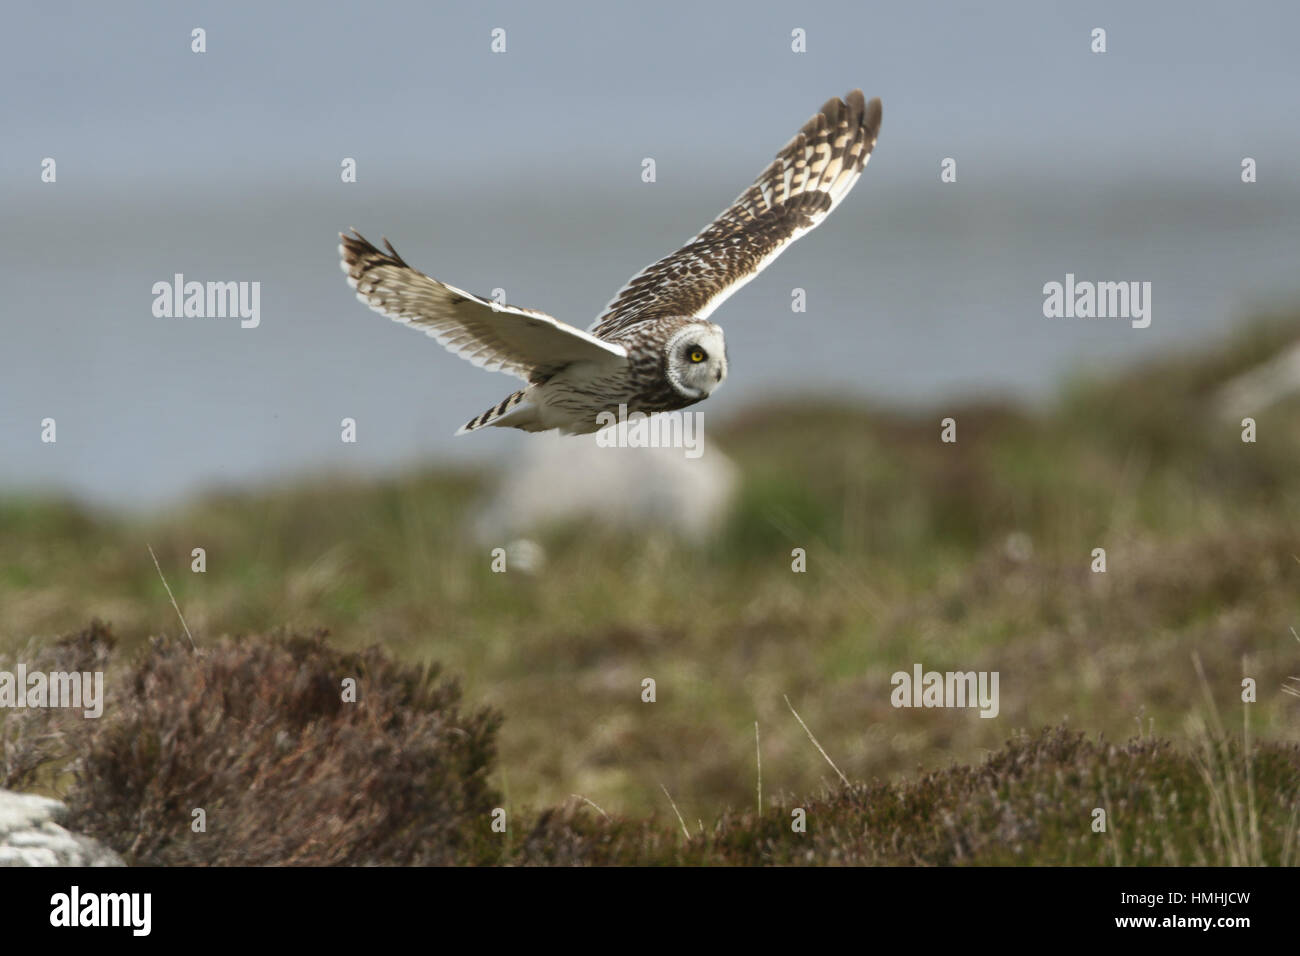 A stunning Short-eared Owl, (Asio flammeus), in flight searching for food over the moors on North Uist, Scotland. - Stock Image